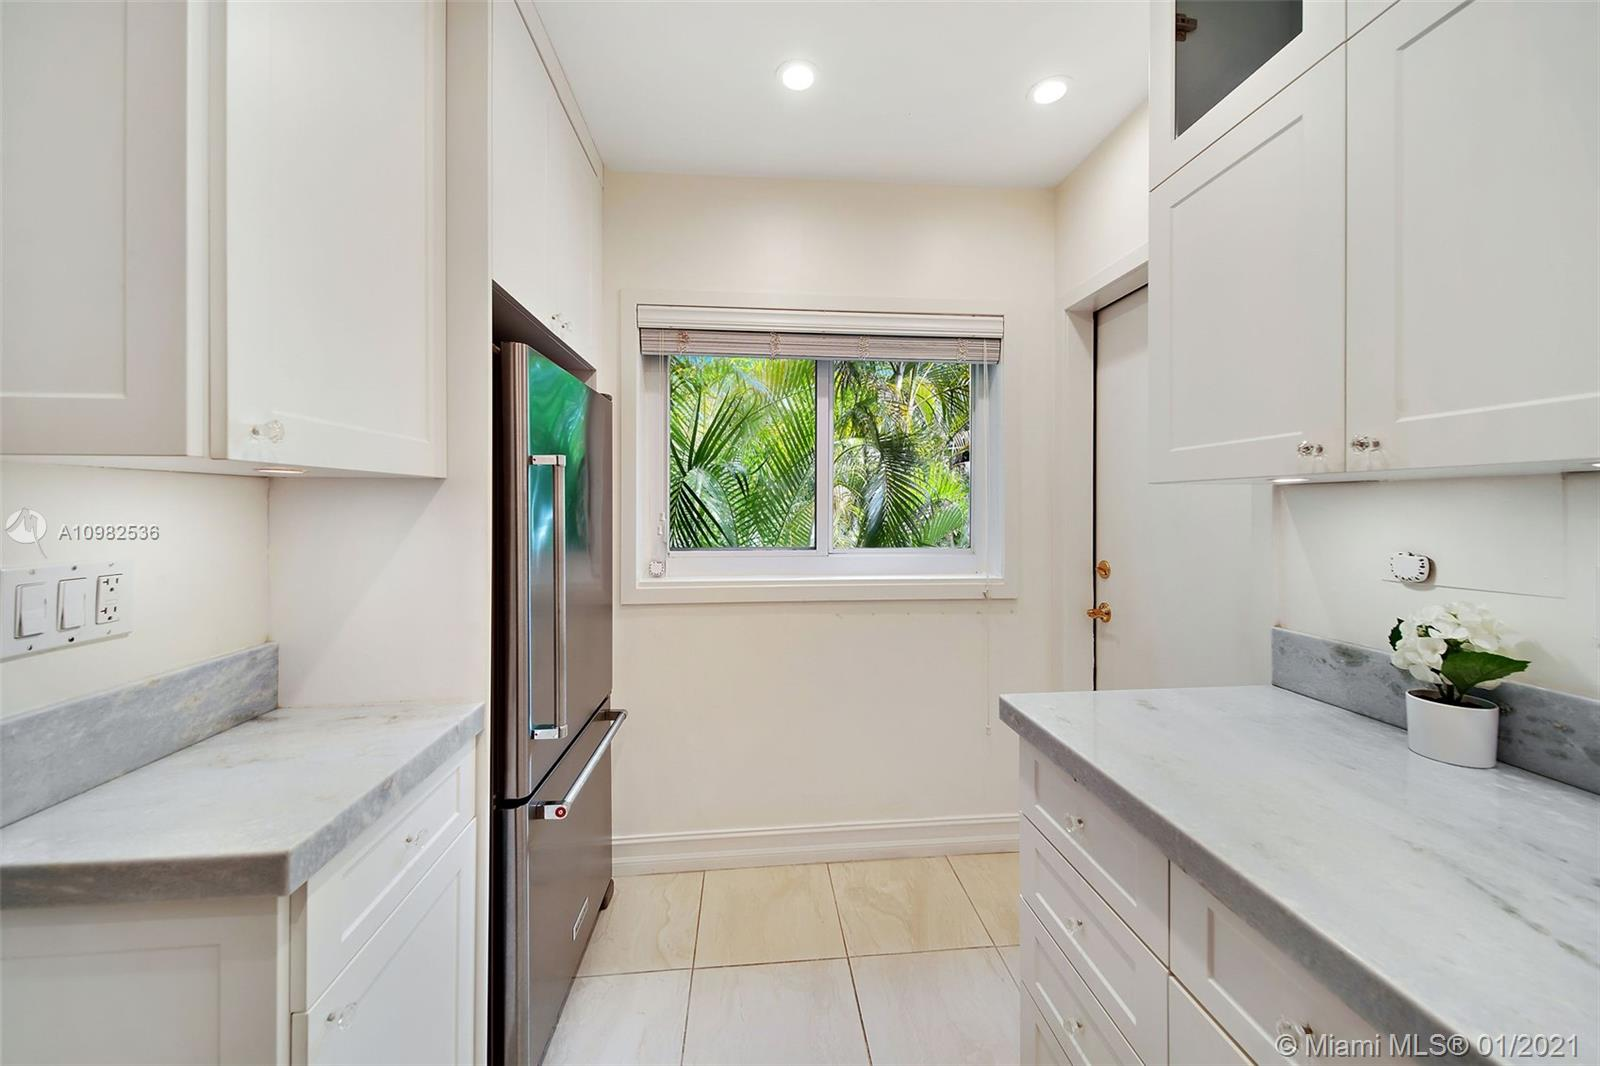 7701 S Red Rd # 4, South Miami, Florida 33143, 2 Bedrooms Bedrooms, ,1 BathroomBathrooms,Residential,For Sale,7701 S Red Rd # 4,A10982536